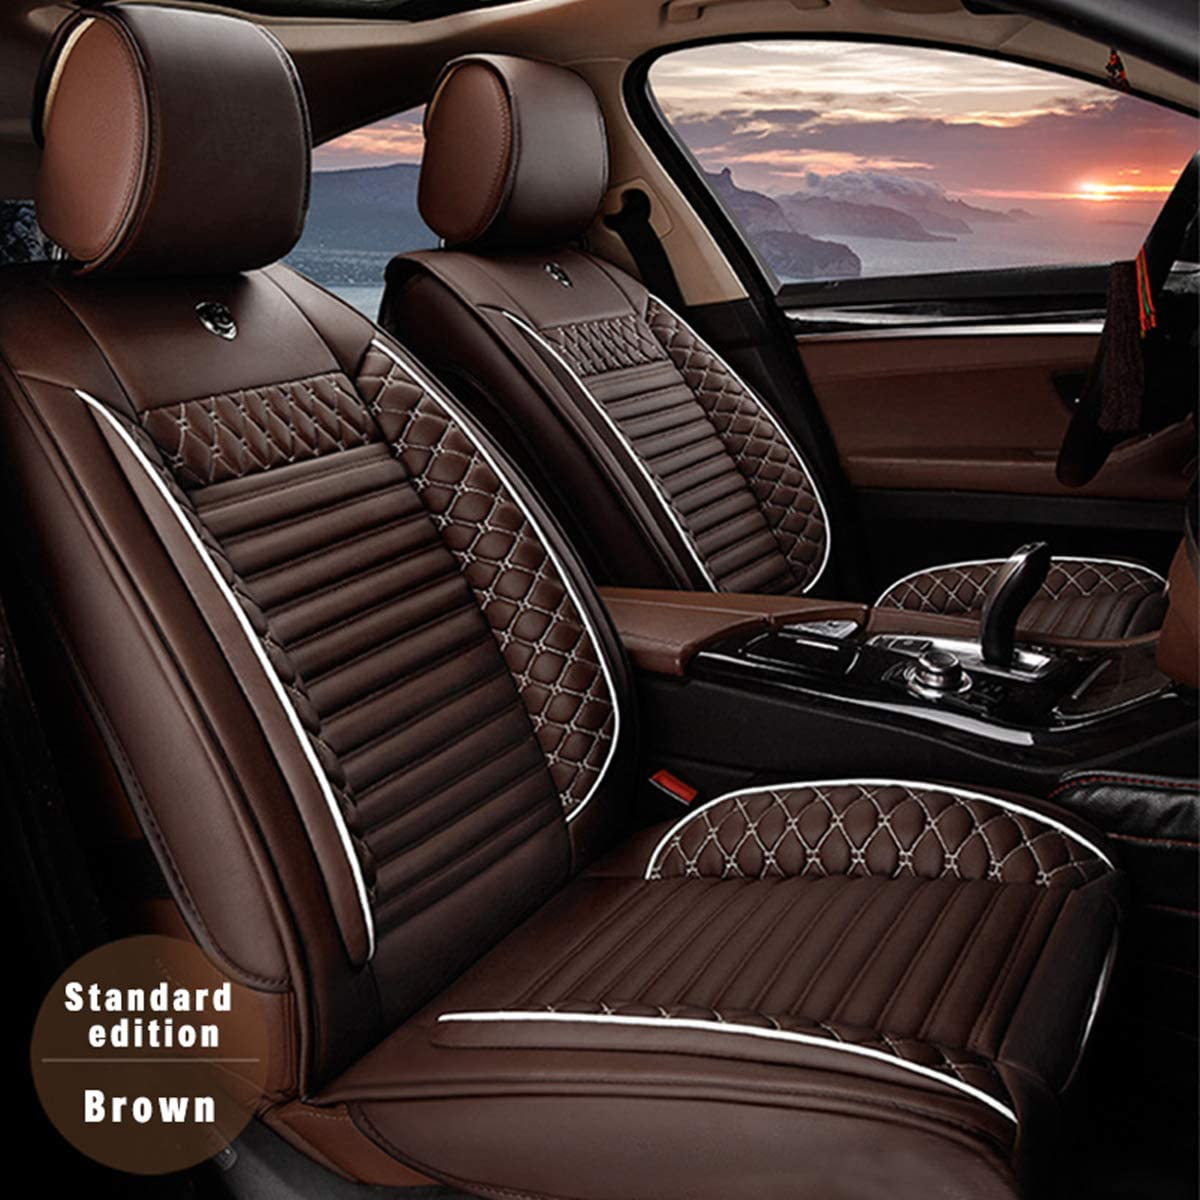 for Jeep Universal 5-Seats Car Seat Covers PU Leather Waterproof Seats Cushion All Season Fit Most Car, Truck, SUV, or Van Front Seat+Rear Seat 5Pcs Standard Edition Brown